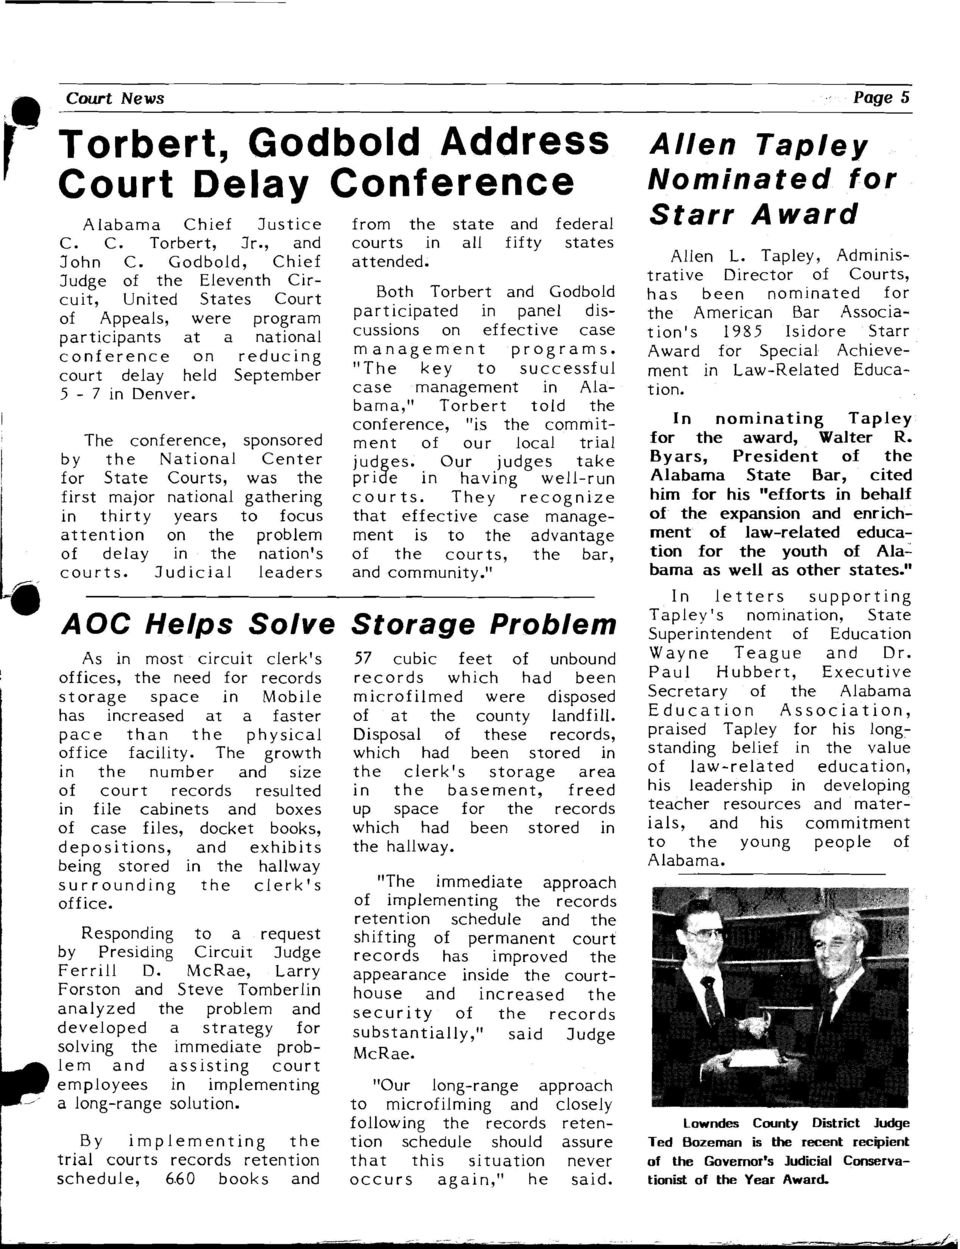 The conference, sponsored by the National Center for State Courts, was the first major national gathering in thirty years to focus attention on the problem of delay in the nation's courts.